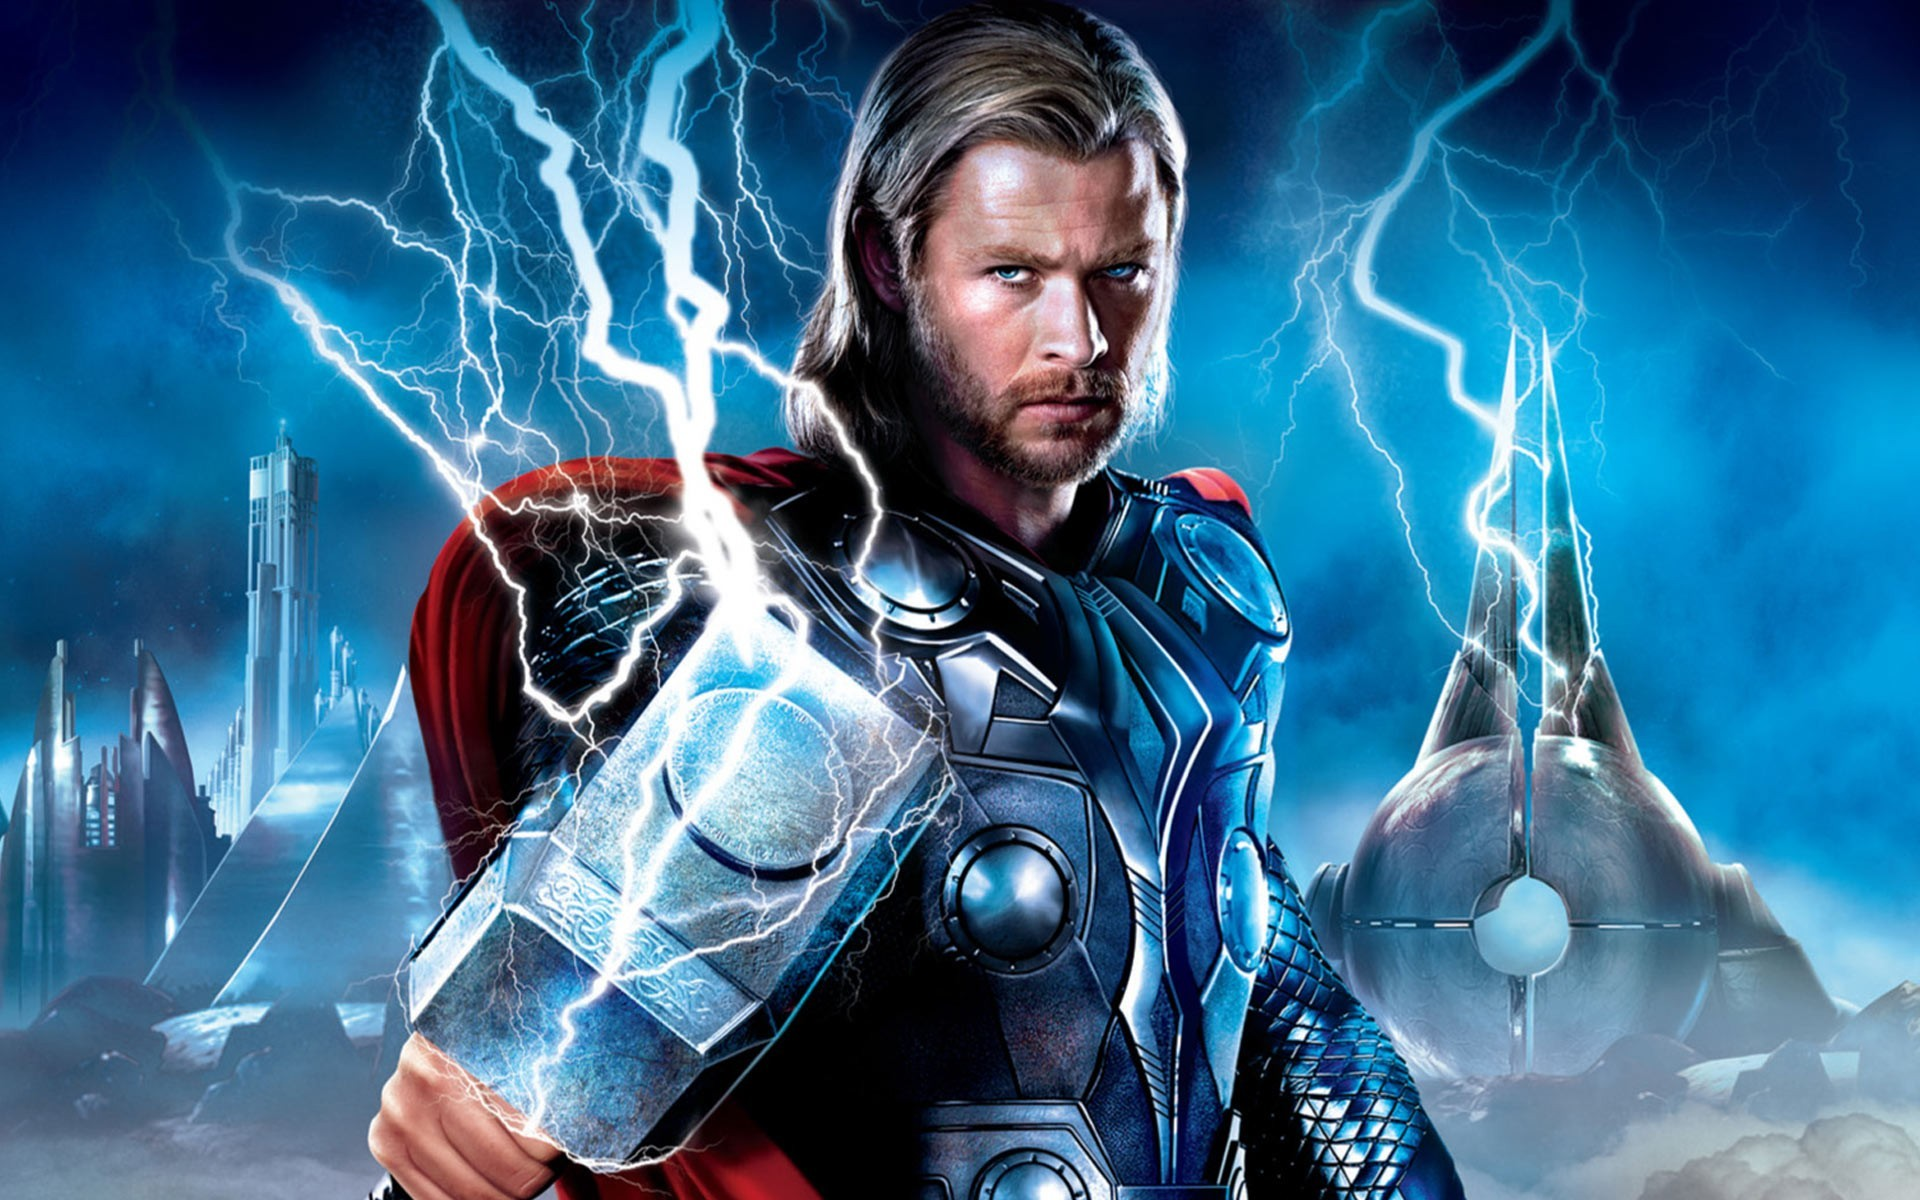 Thor Movie Wallpaper 81 Images